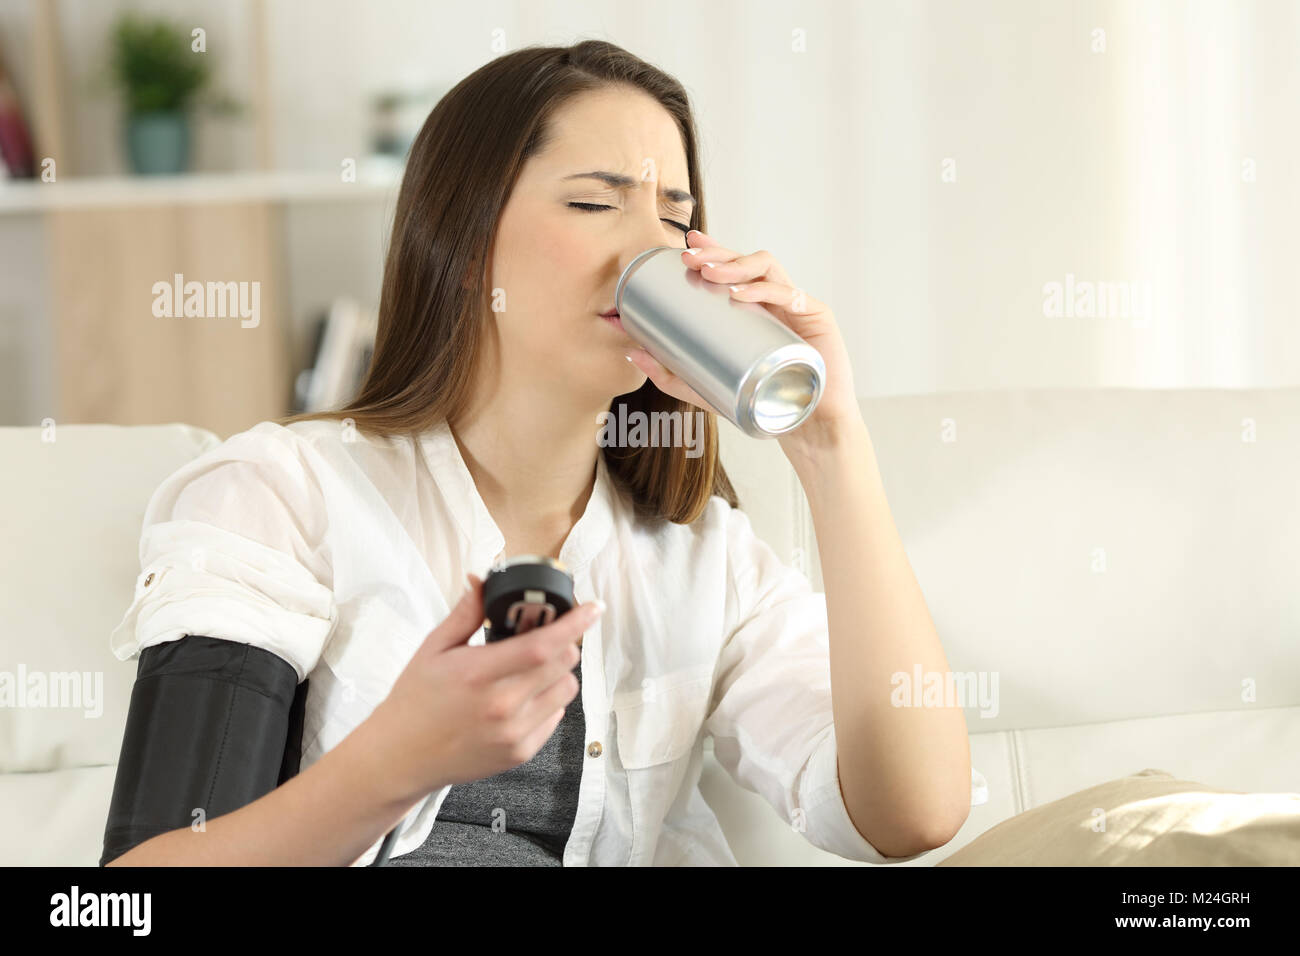 Woman suffering a low blood pressure drinking sweet soda sitting on a couch in the living room at home - Stock Image